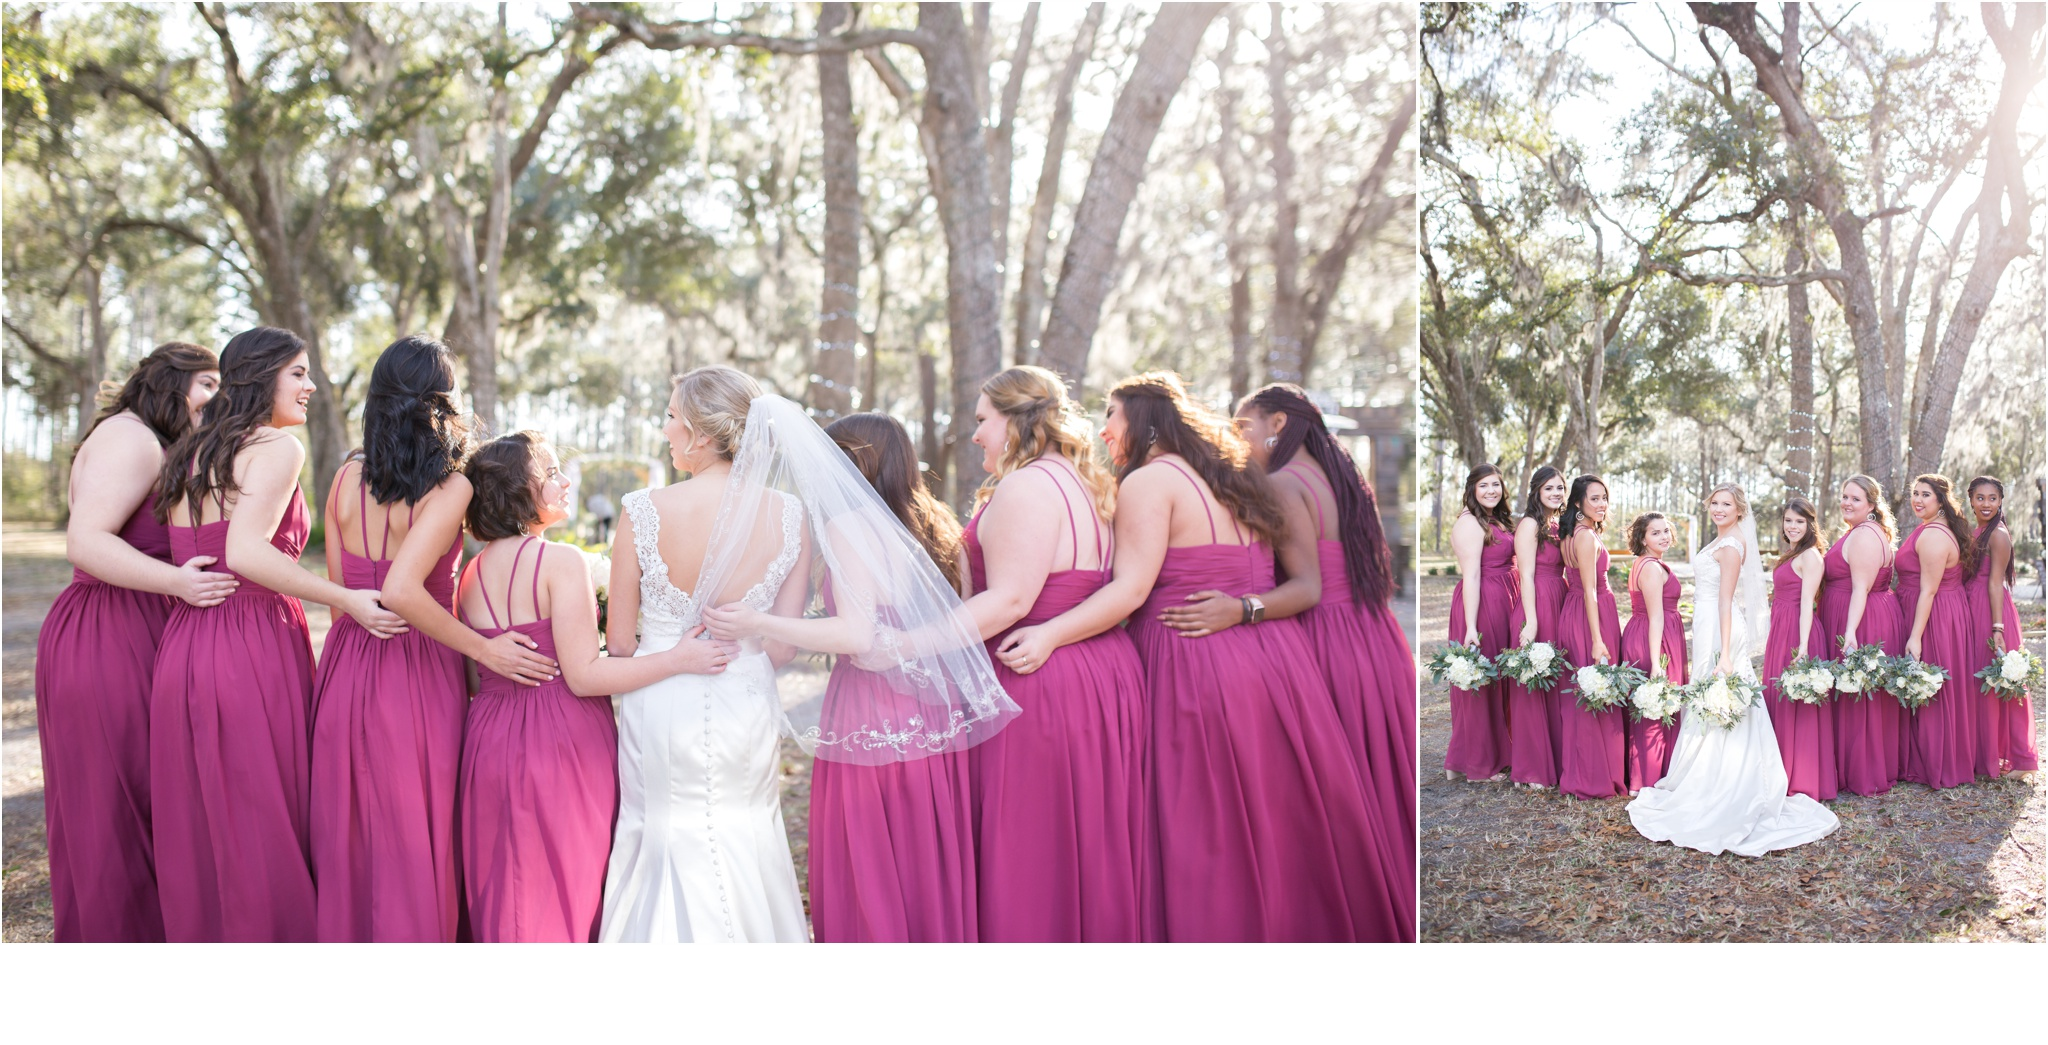 Rainey_Gregg_Photography_St._Simons_Island_Georgia_California_Wedding_Portrait_Photography_0511.jpg